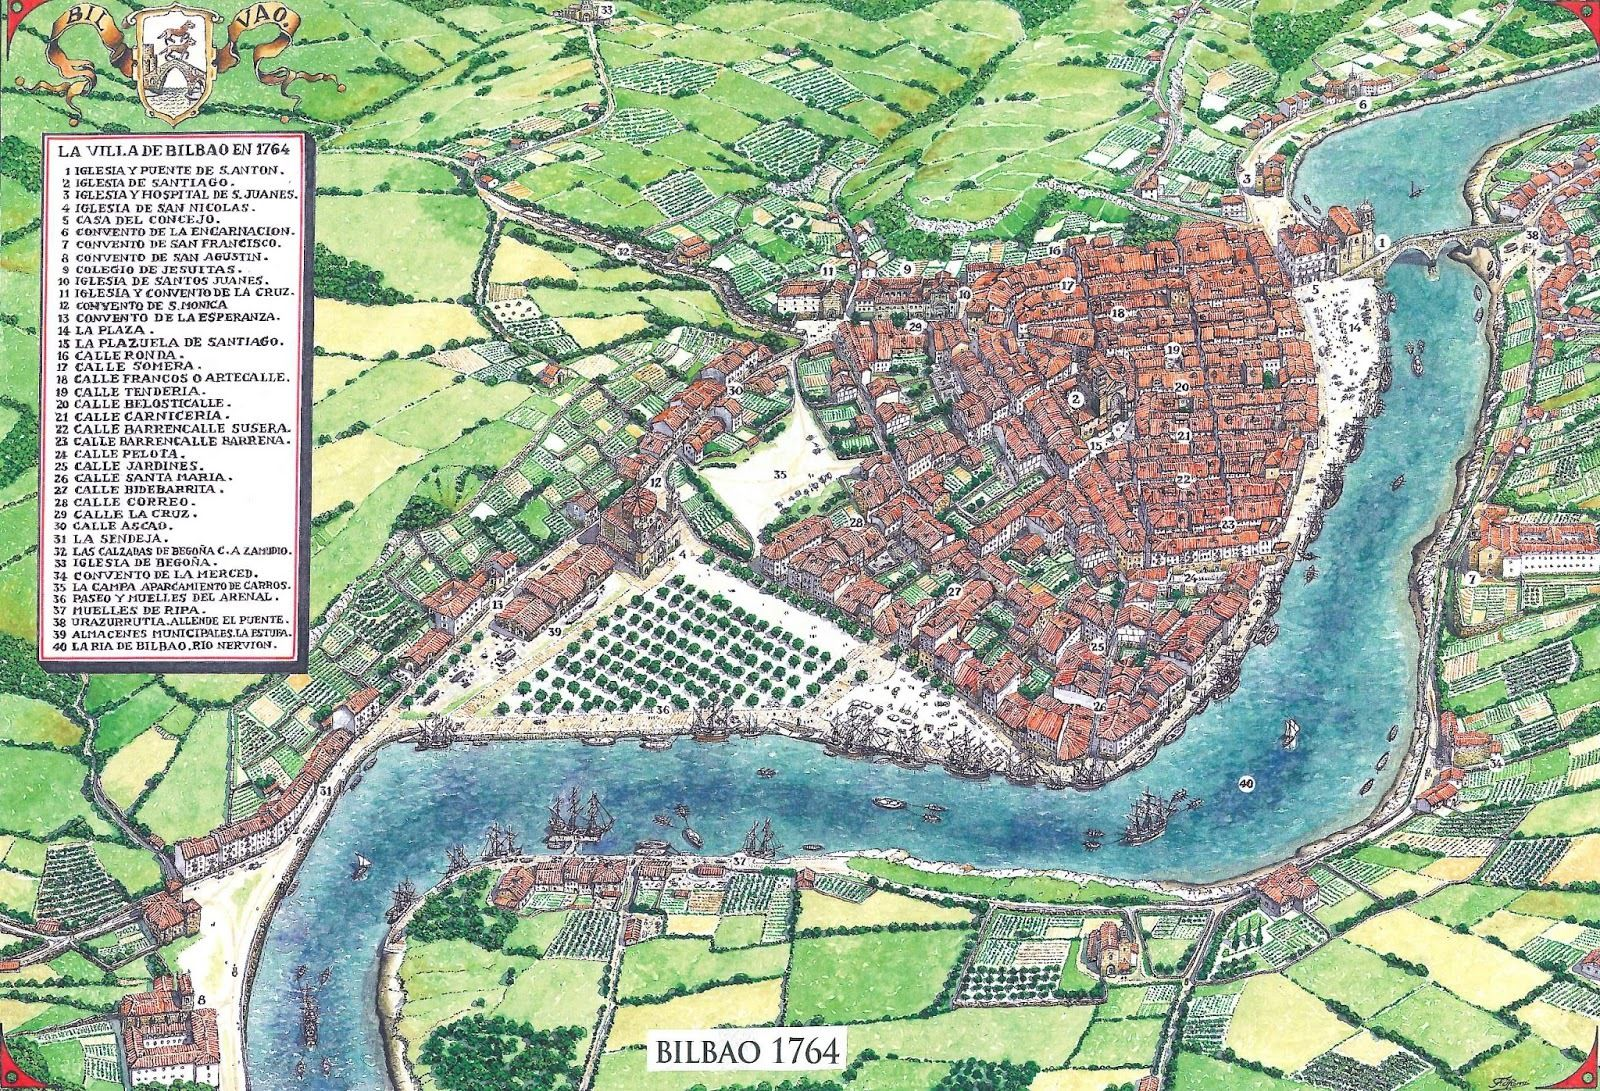 Bilbao In 1764 The Largest City In The Basque Country And The